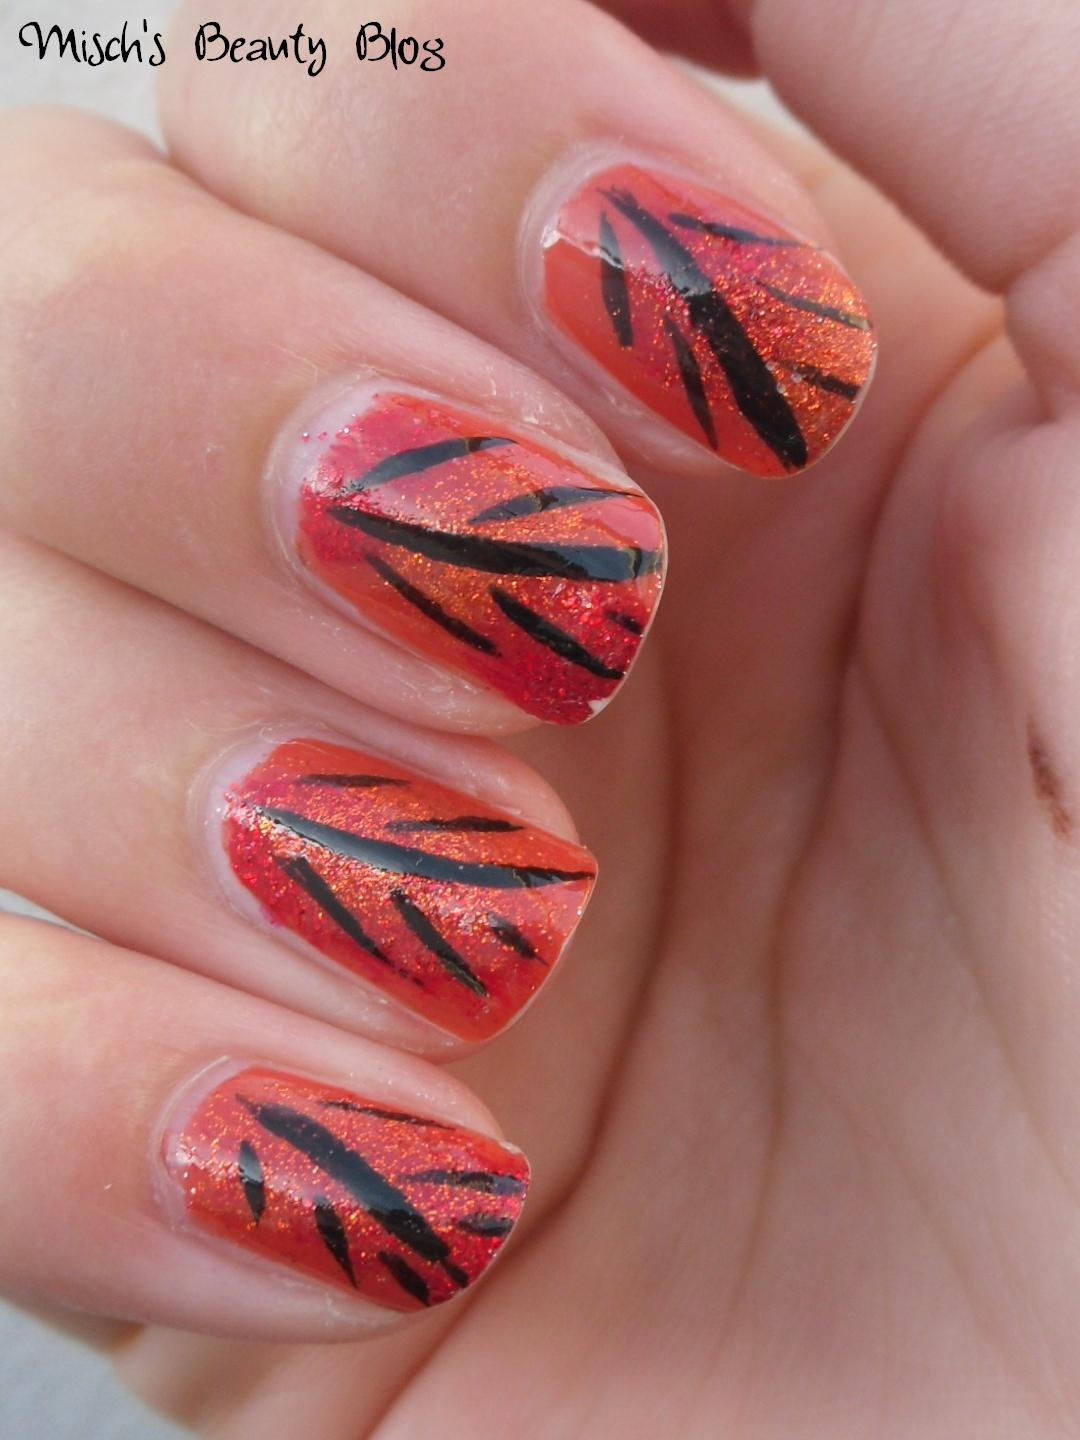 Nail Art Trends: Misch's Beauty Blog: NOTD September 29th: Fall Leaf Nail Art